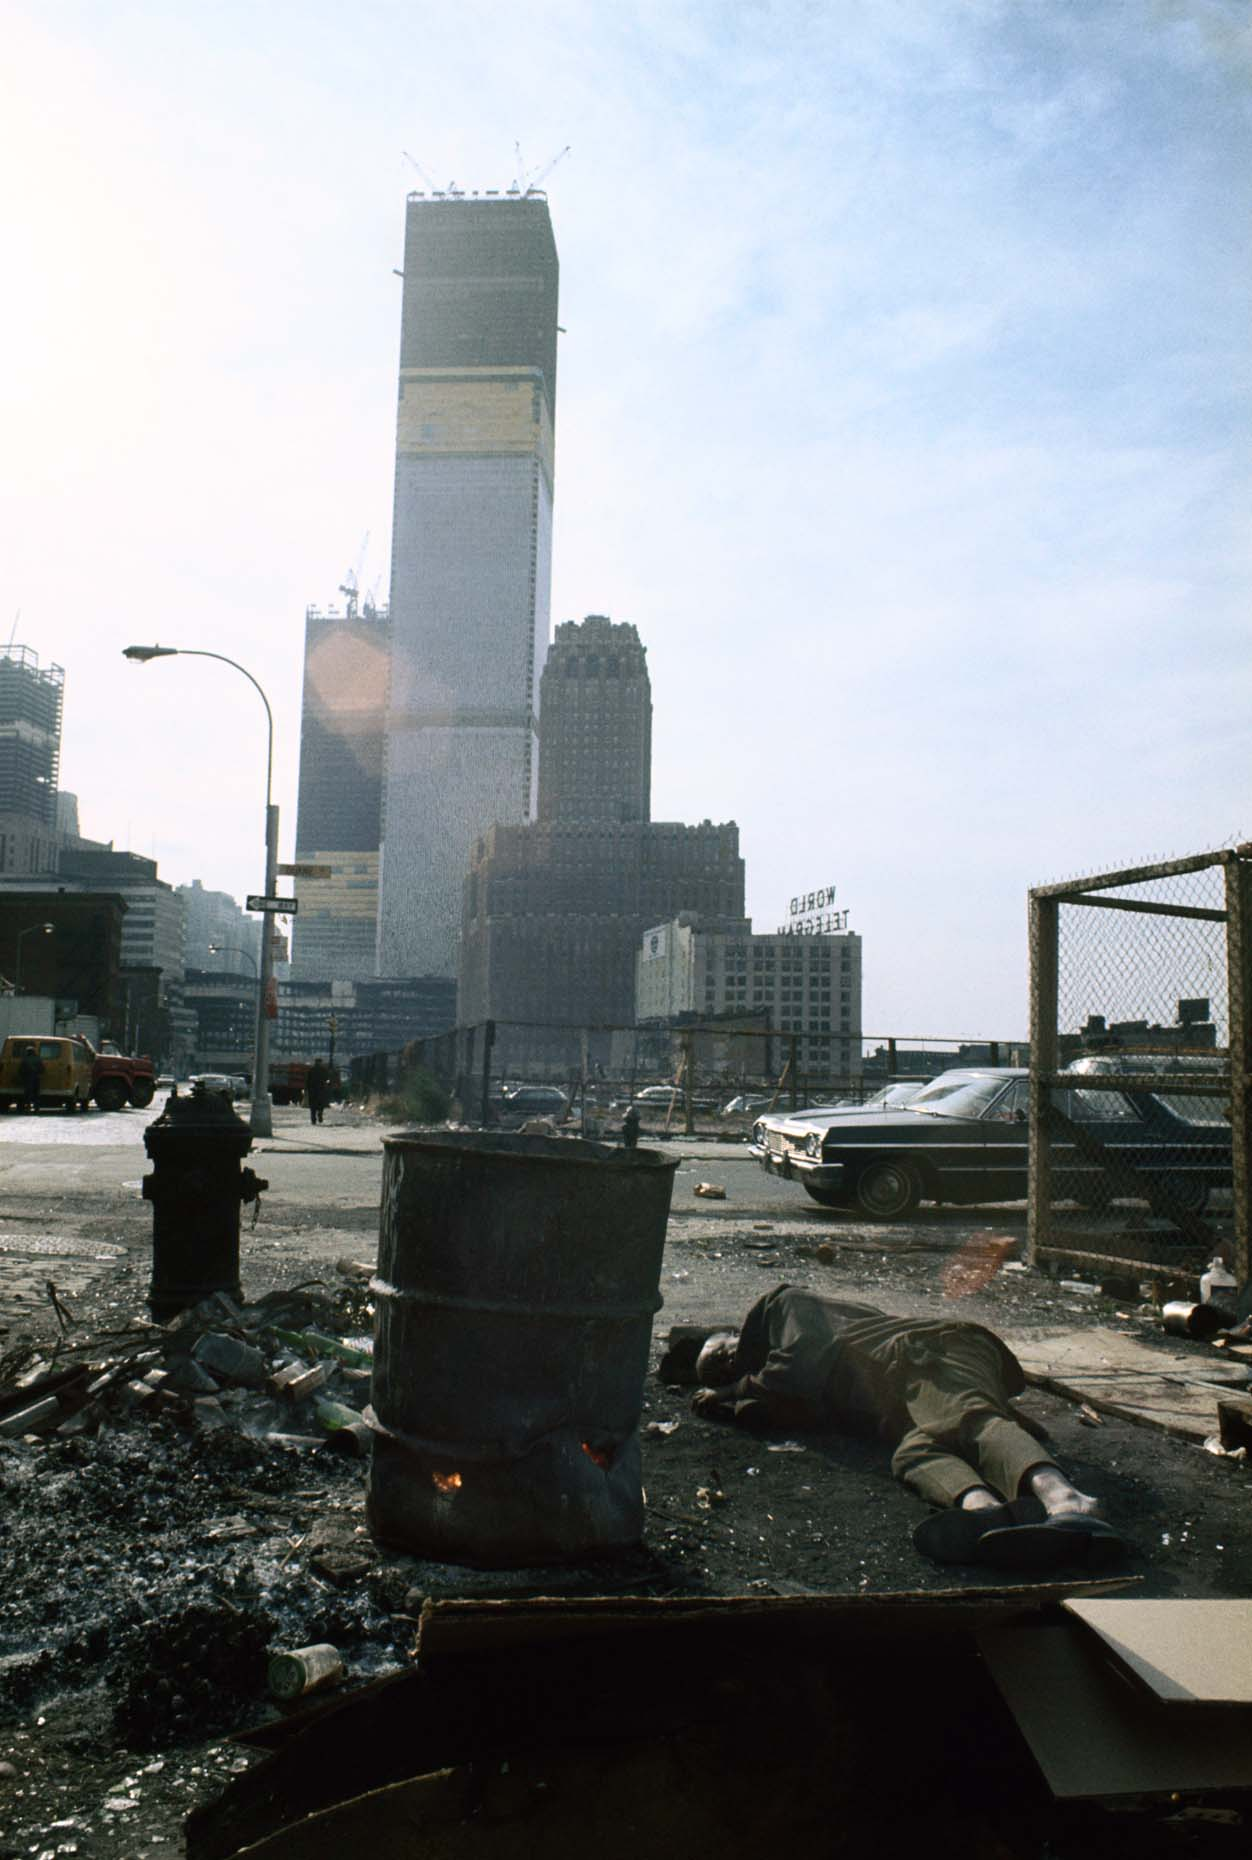 54_View of the World Trade Center under construction from Duane Street, Manhattan, 1970_.jpg